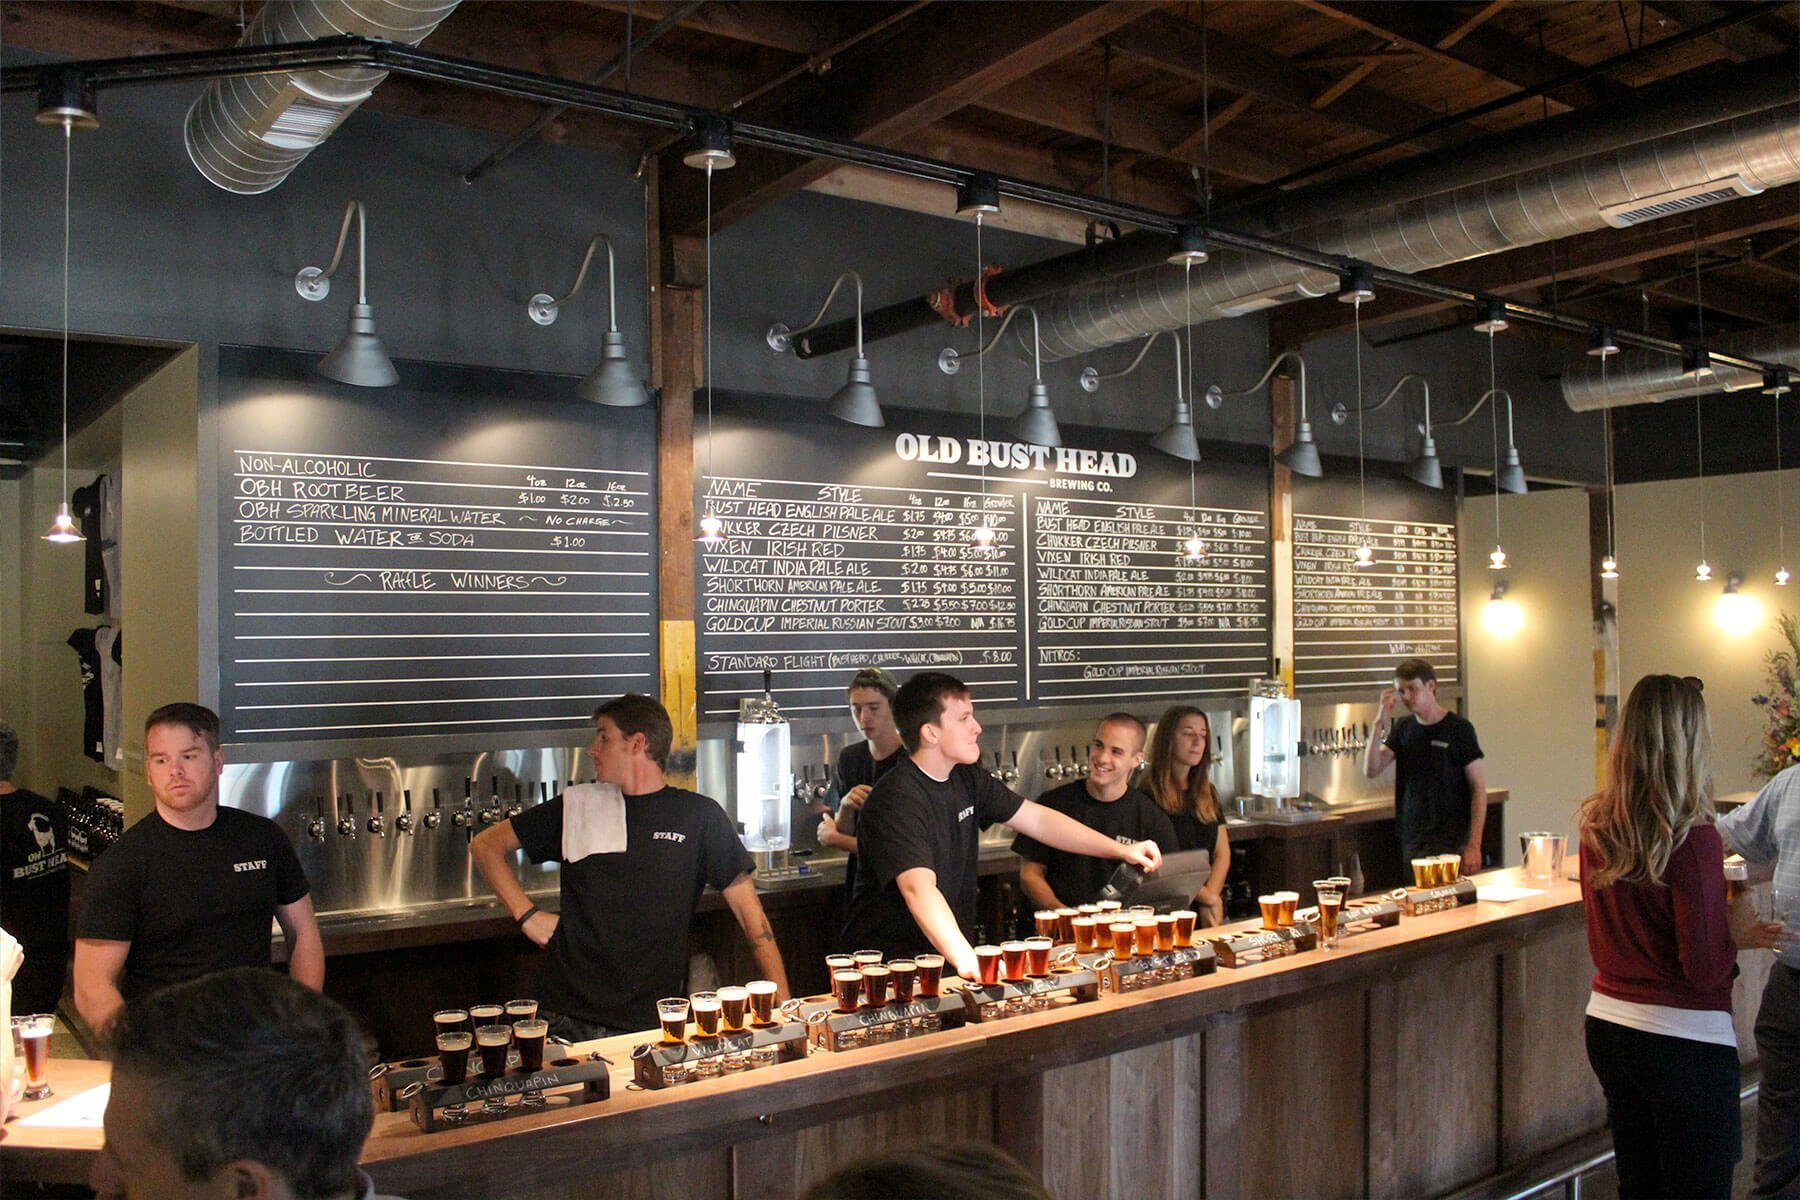 Inside the Old Bust Head Brewing Co. Tap Room in Vint Hill, Virginia